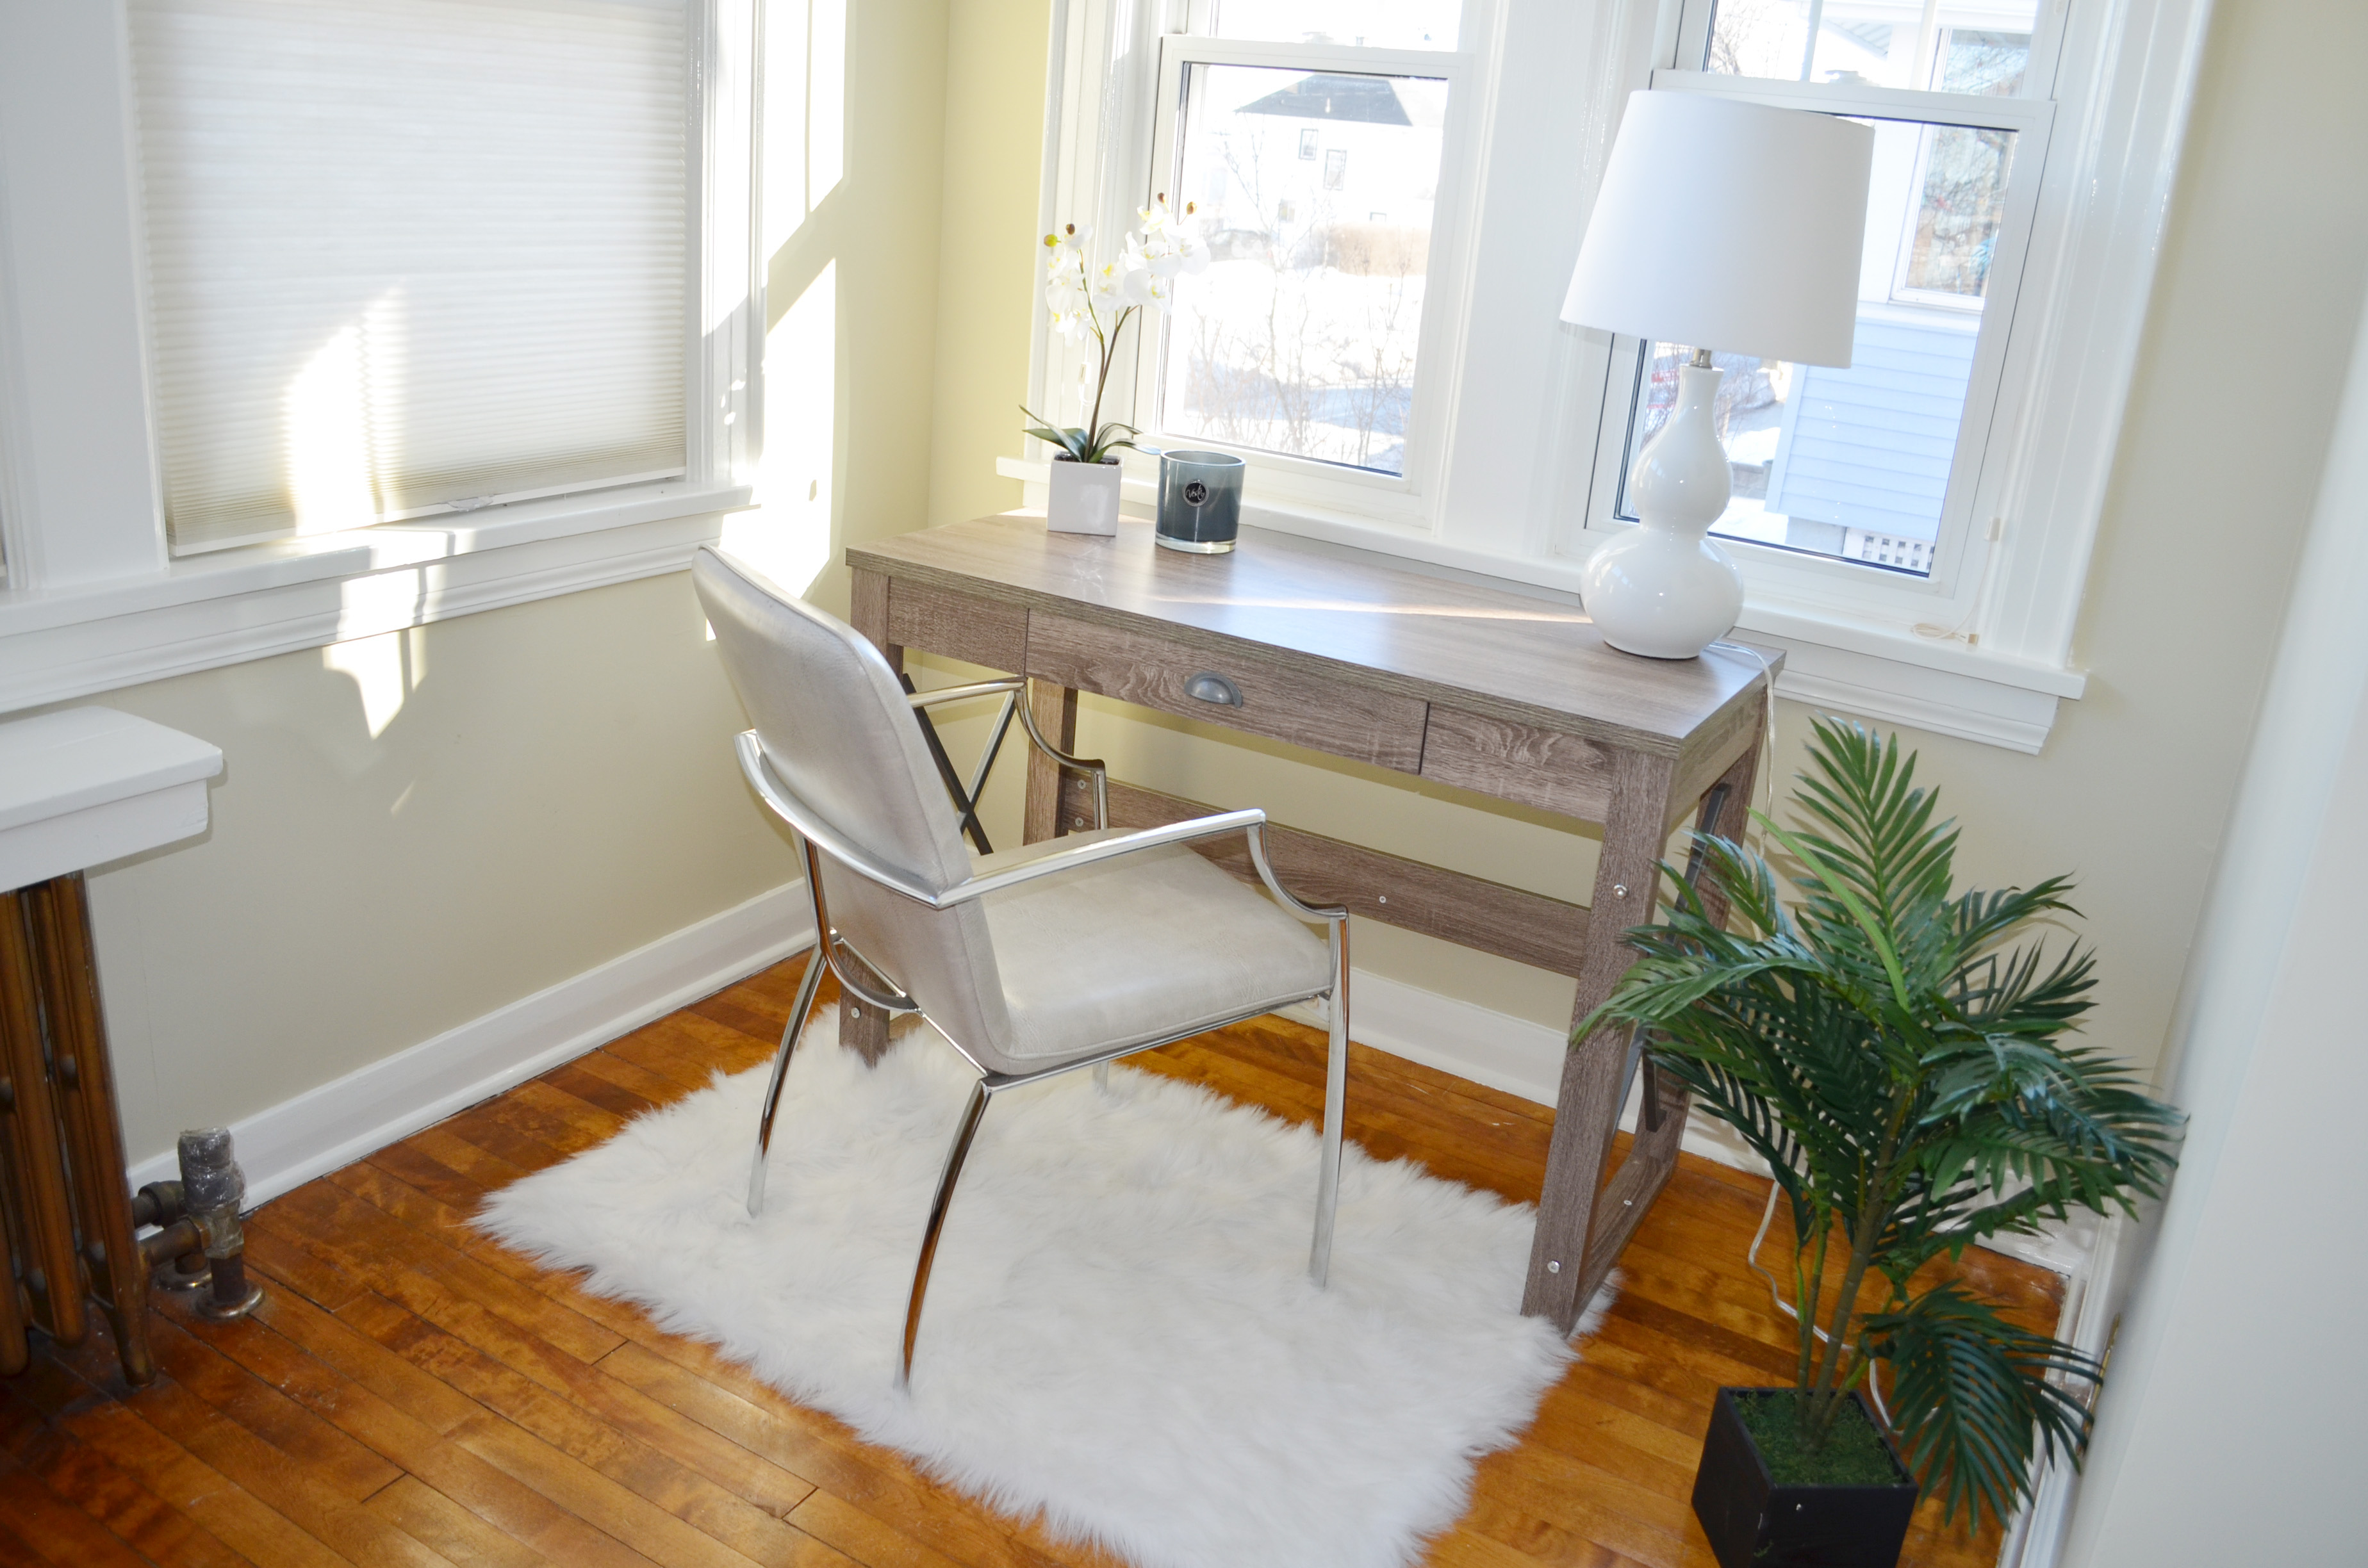 Home Stager Halifax Home Staging Real Estate Vacant Staging Pam MacKinnon Revive Home Staging 1